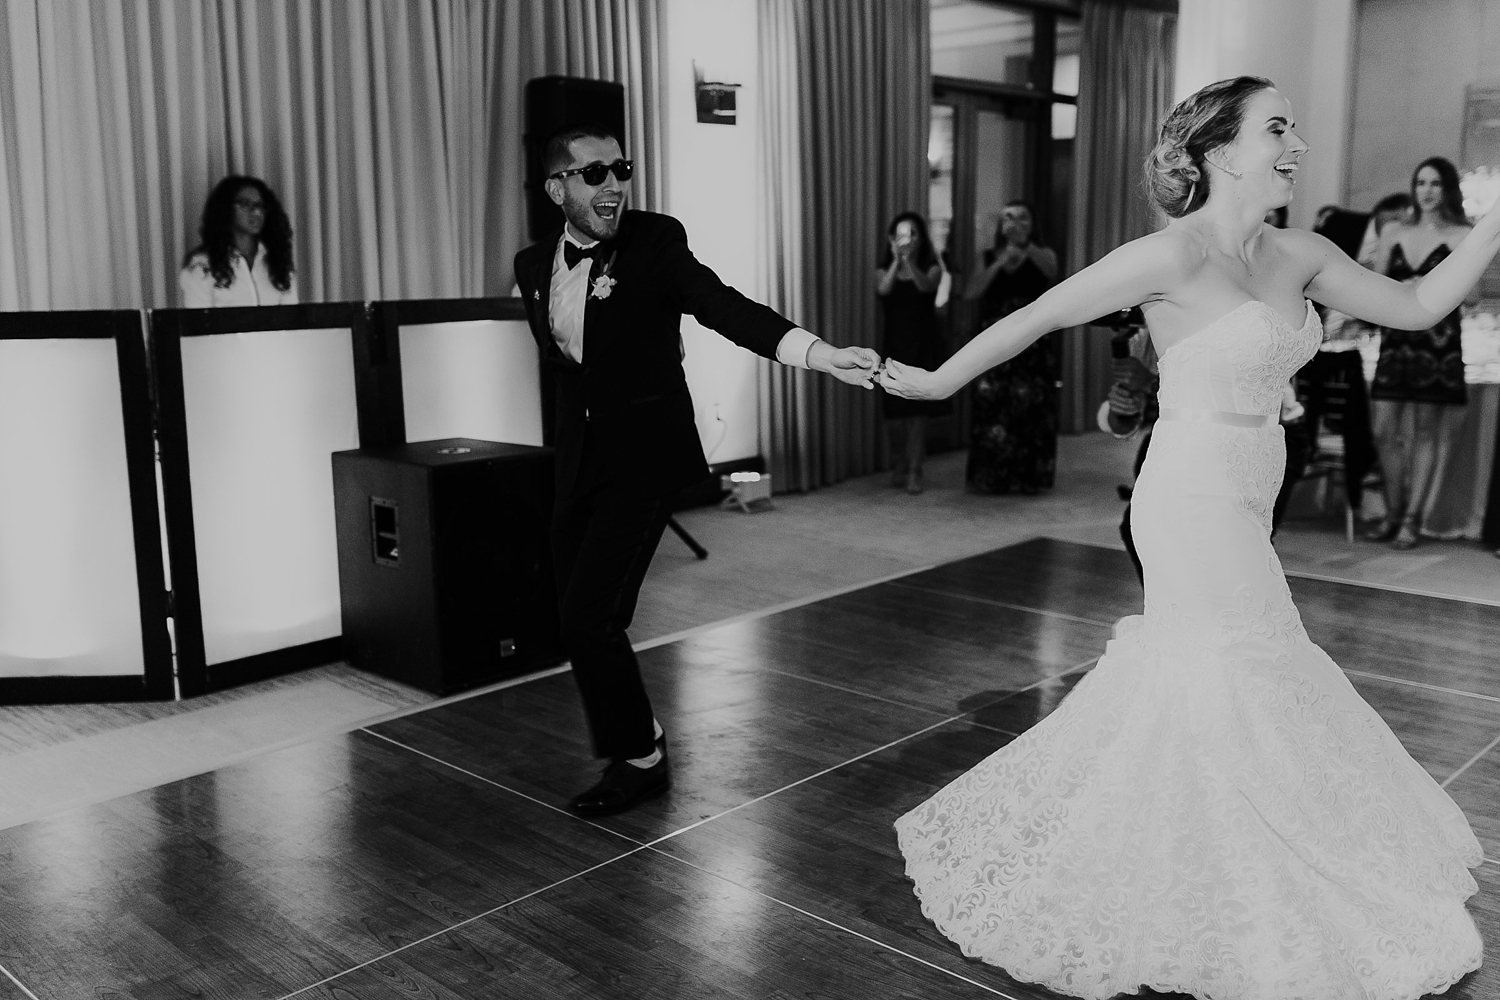 Alicia+lucia+photography+-+albuquerque+wedding+photographer+-+santa+fe+wedding+photography+-+new+mexico+wedding+photographer+-+new+mexico+wedding+-+santa+fe+wedding+-+four+seasons+santa+fe+wedding+-+santa+fe+fall+wedding_0070.jpg